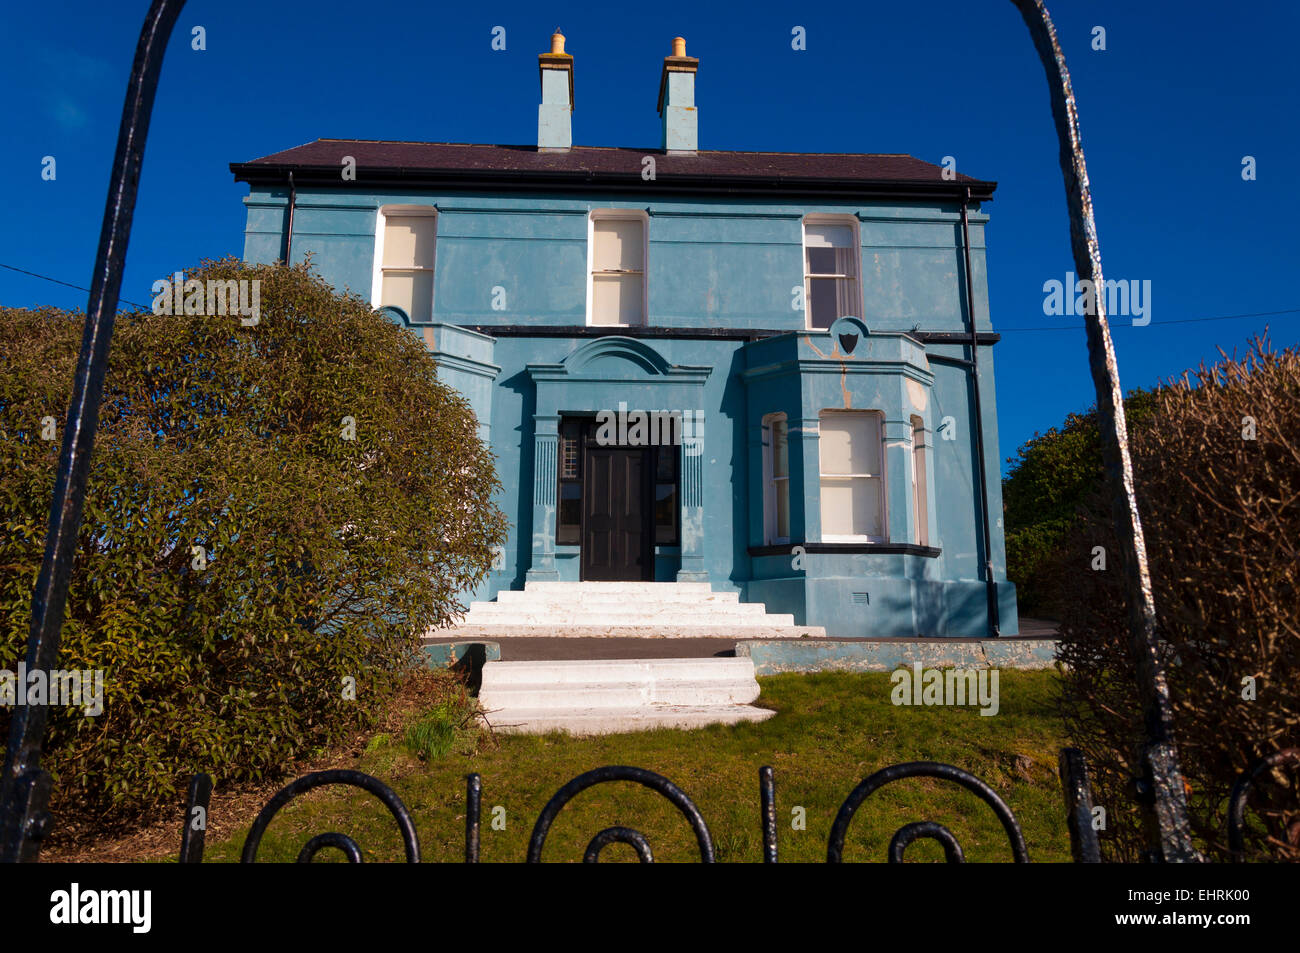 House in Burtonport, County Donegal, Ireland previously known as Atlantis HQ of The Atlantis Therapy Commune dubbed - Stock Image